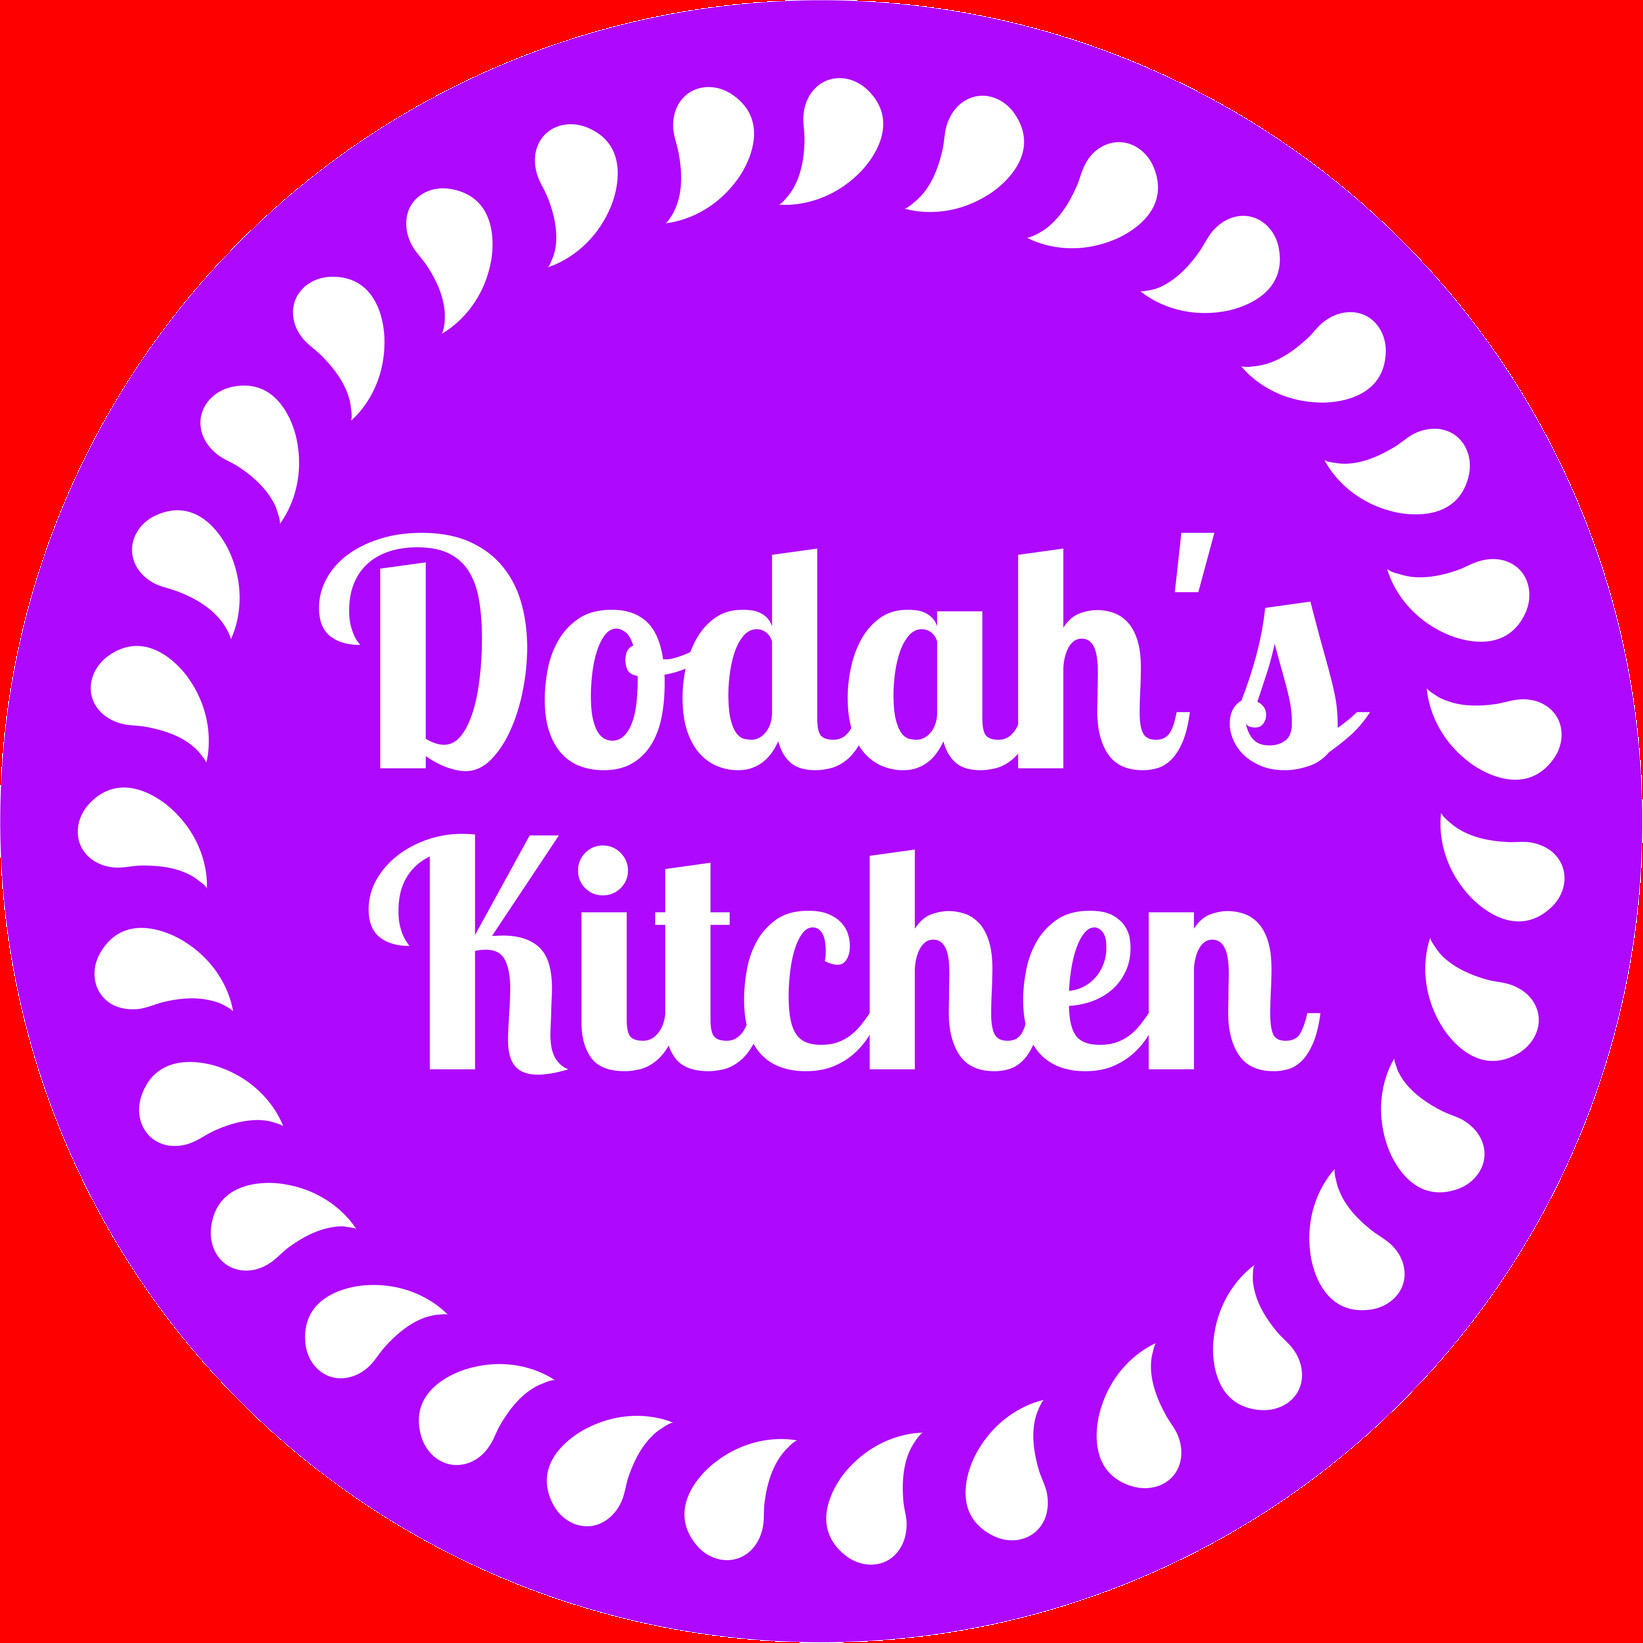 dodahs-kitchen.jpg